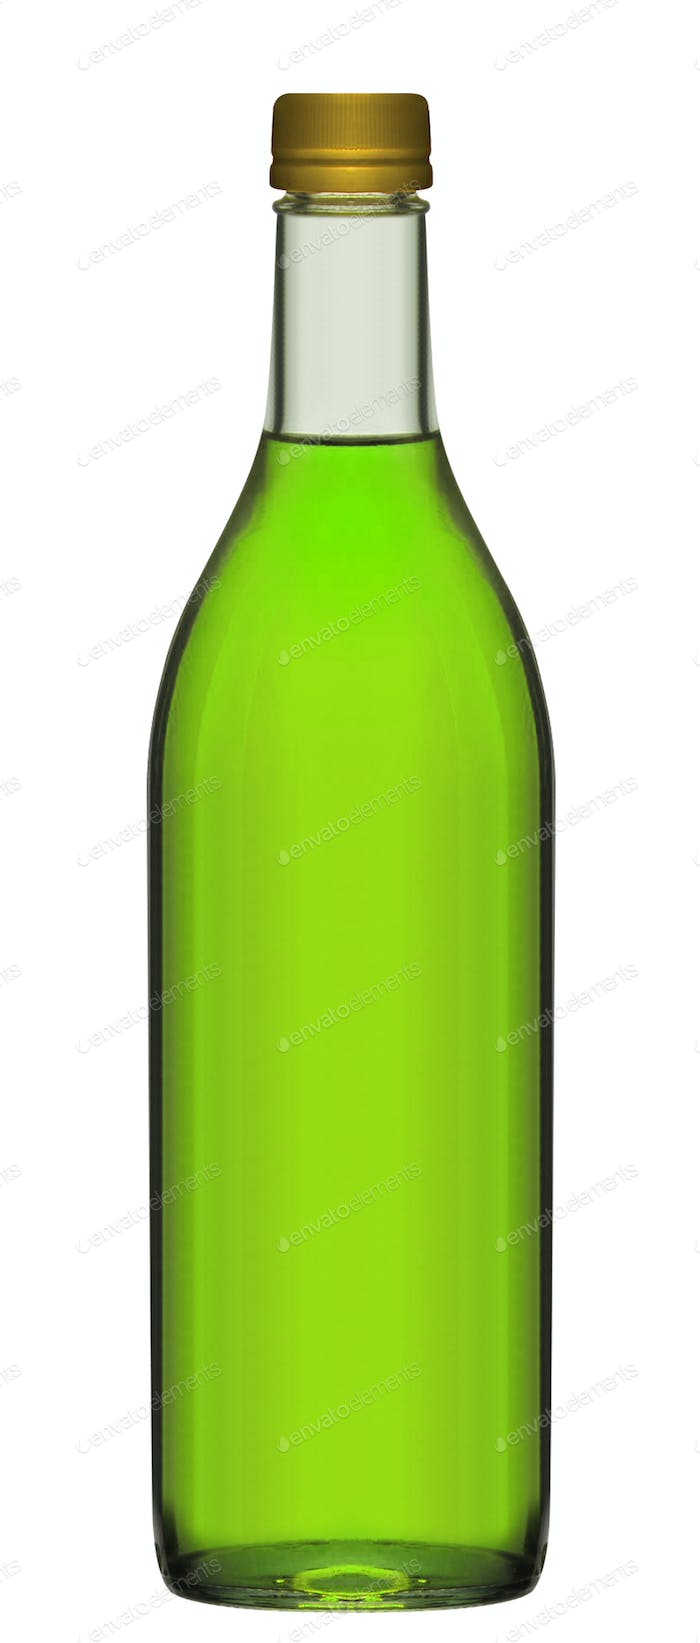 Small green beer bottle